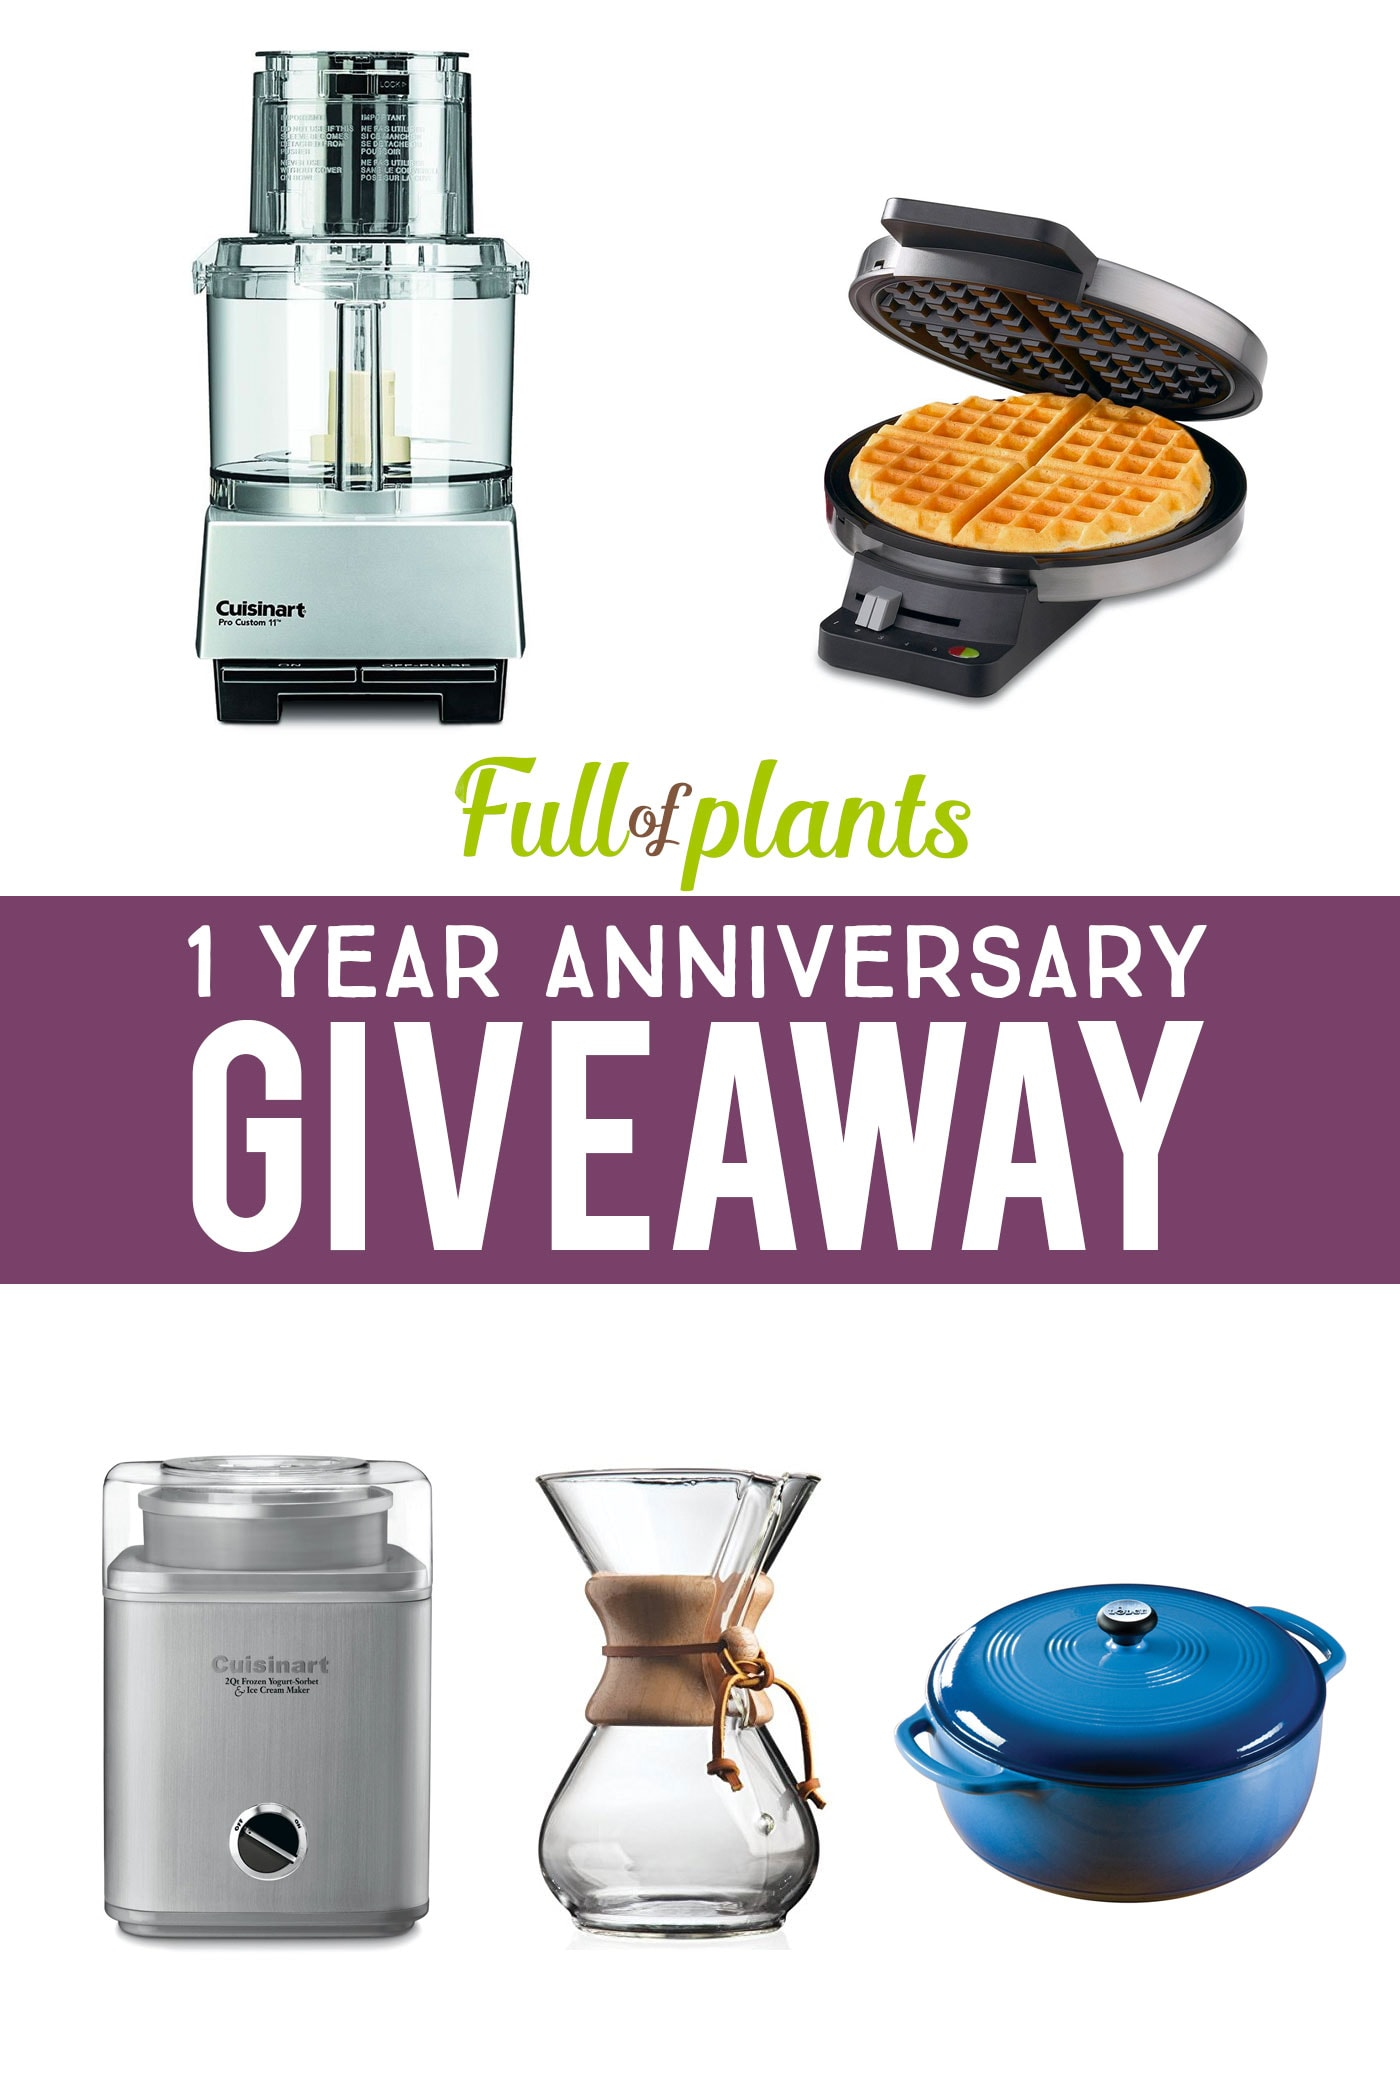 Full of Plants - Anniversary Giveaway